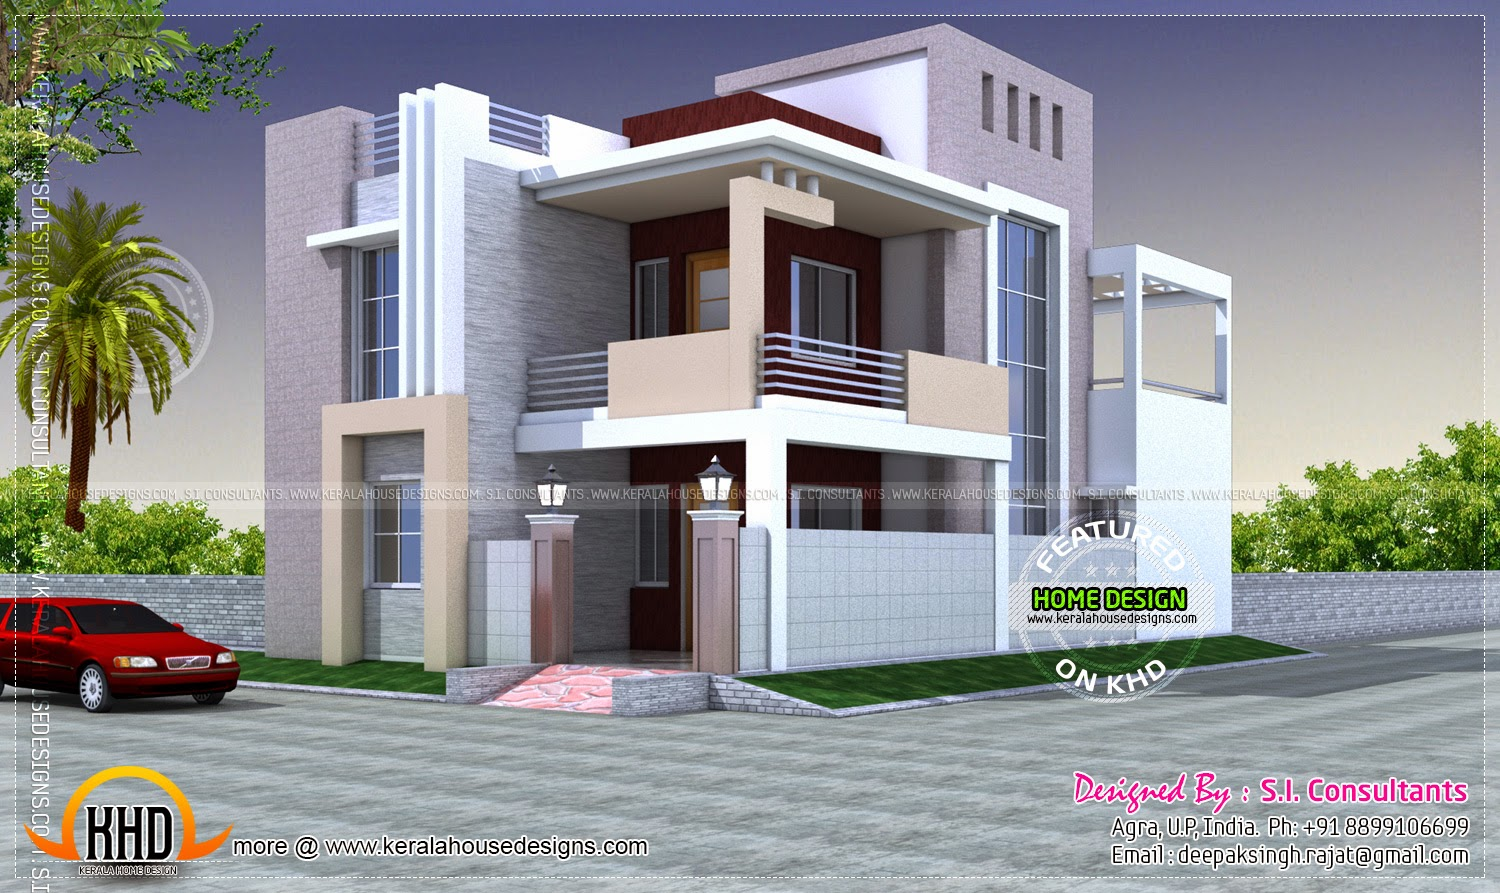 House exterior elevation modern style kerala home design for House design pictures exterior